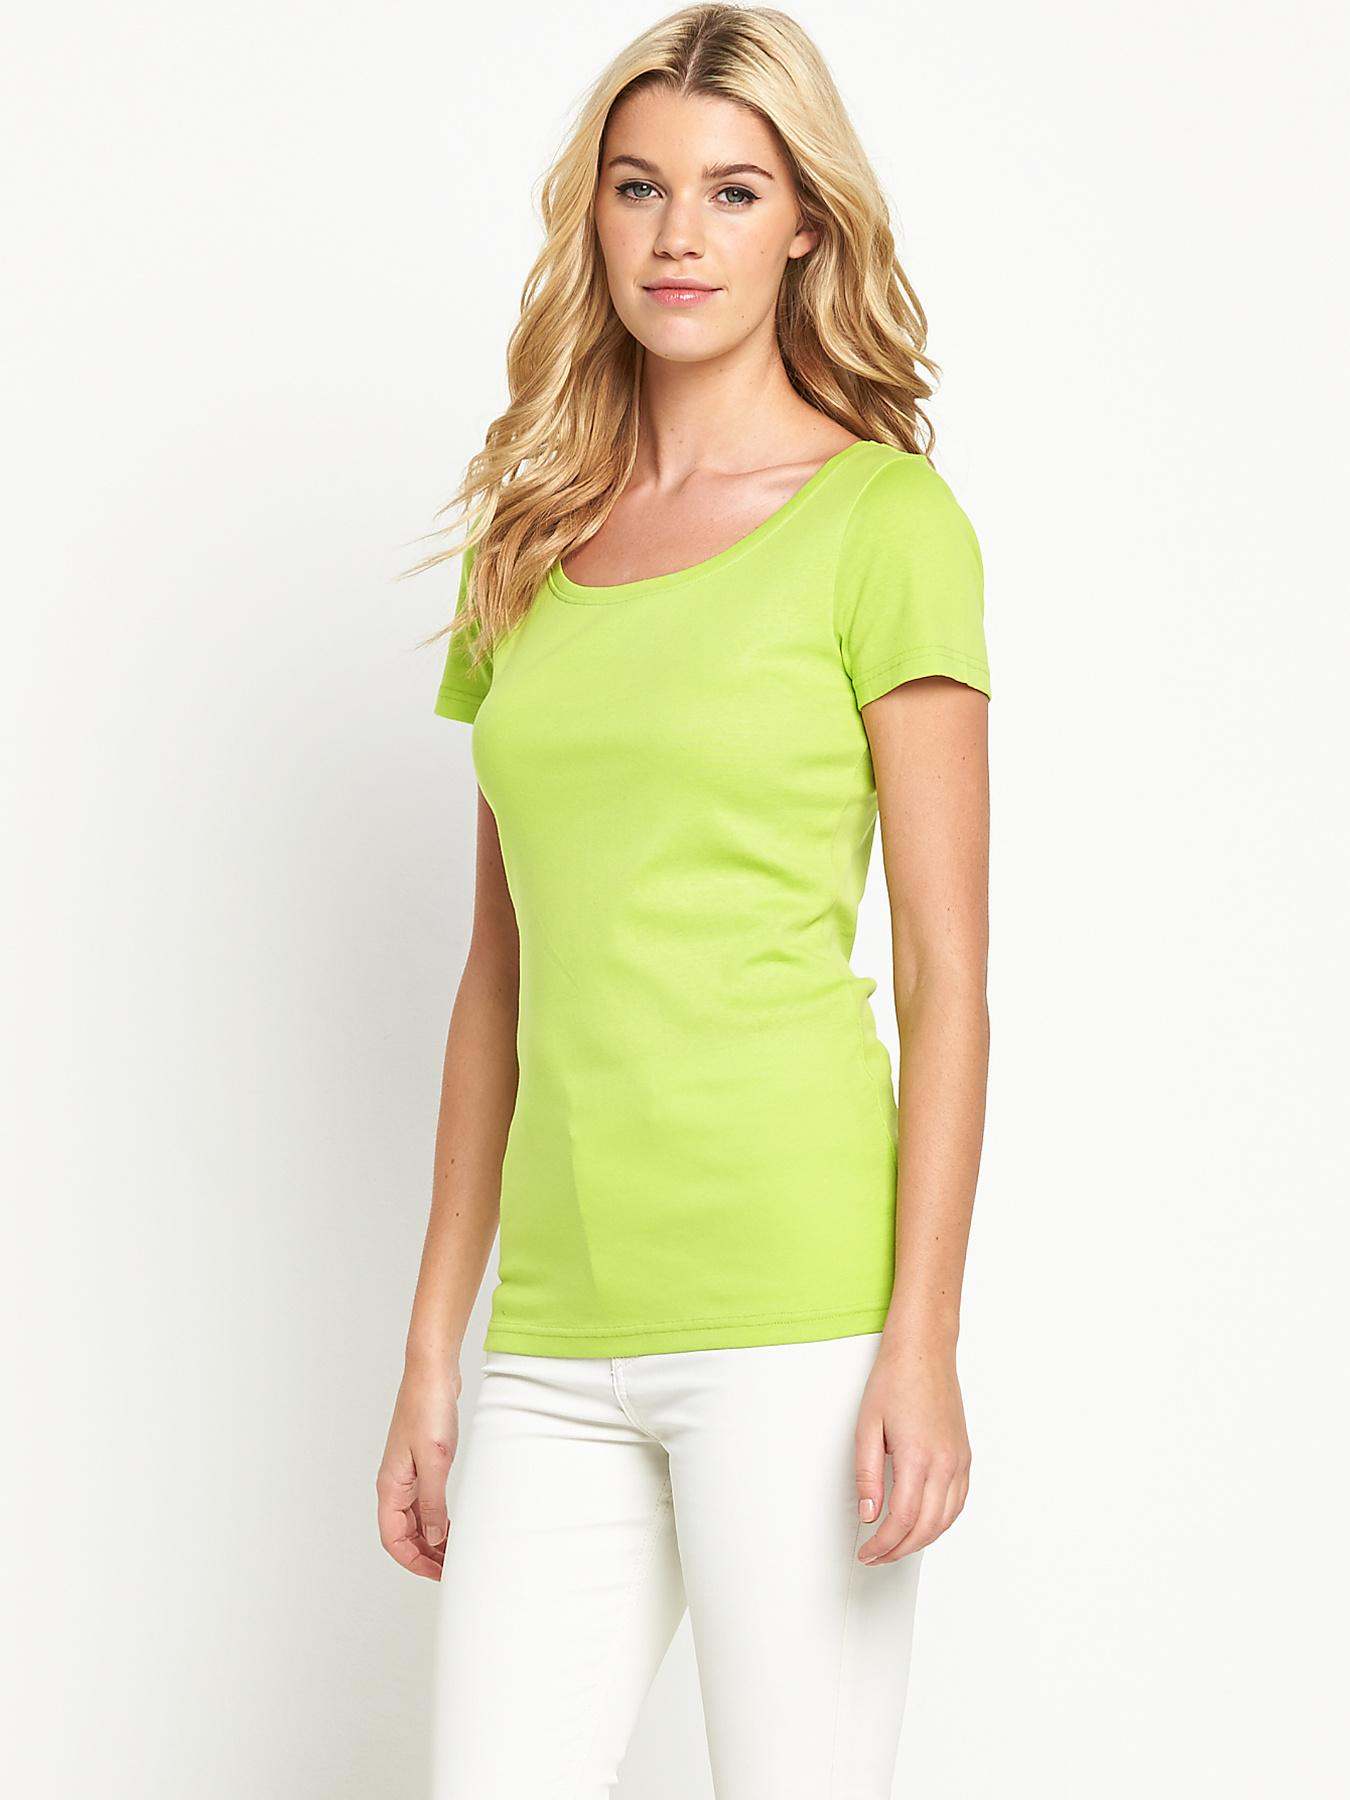 Short Sleeve Scoop T-shirt, Pink,Lime at Littlewoods